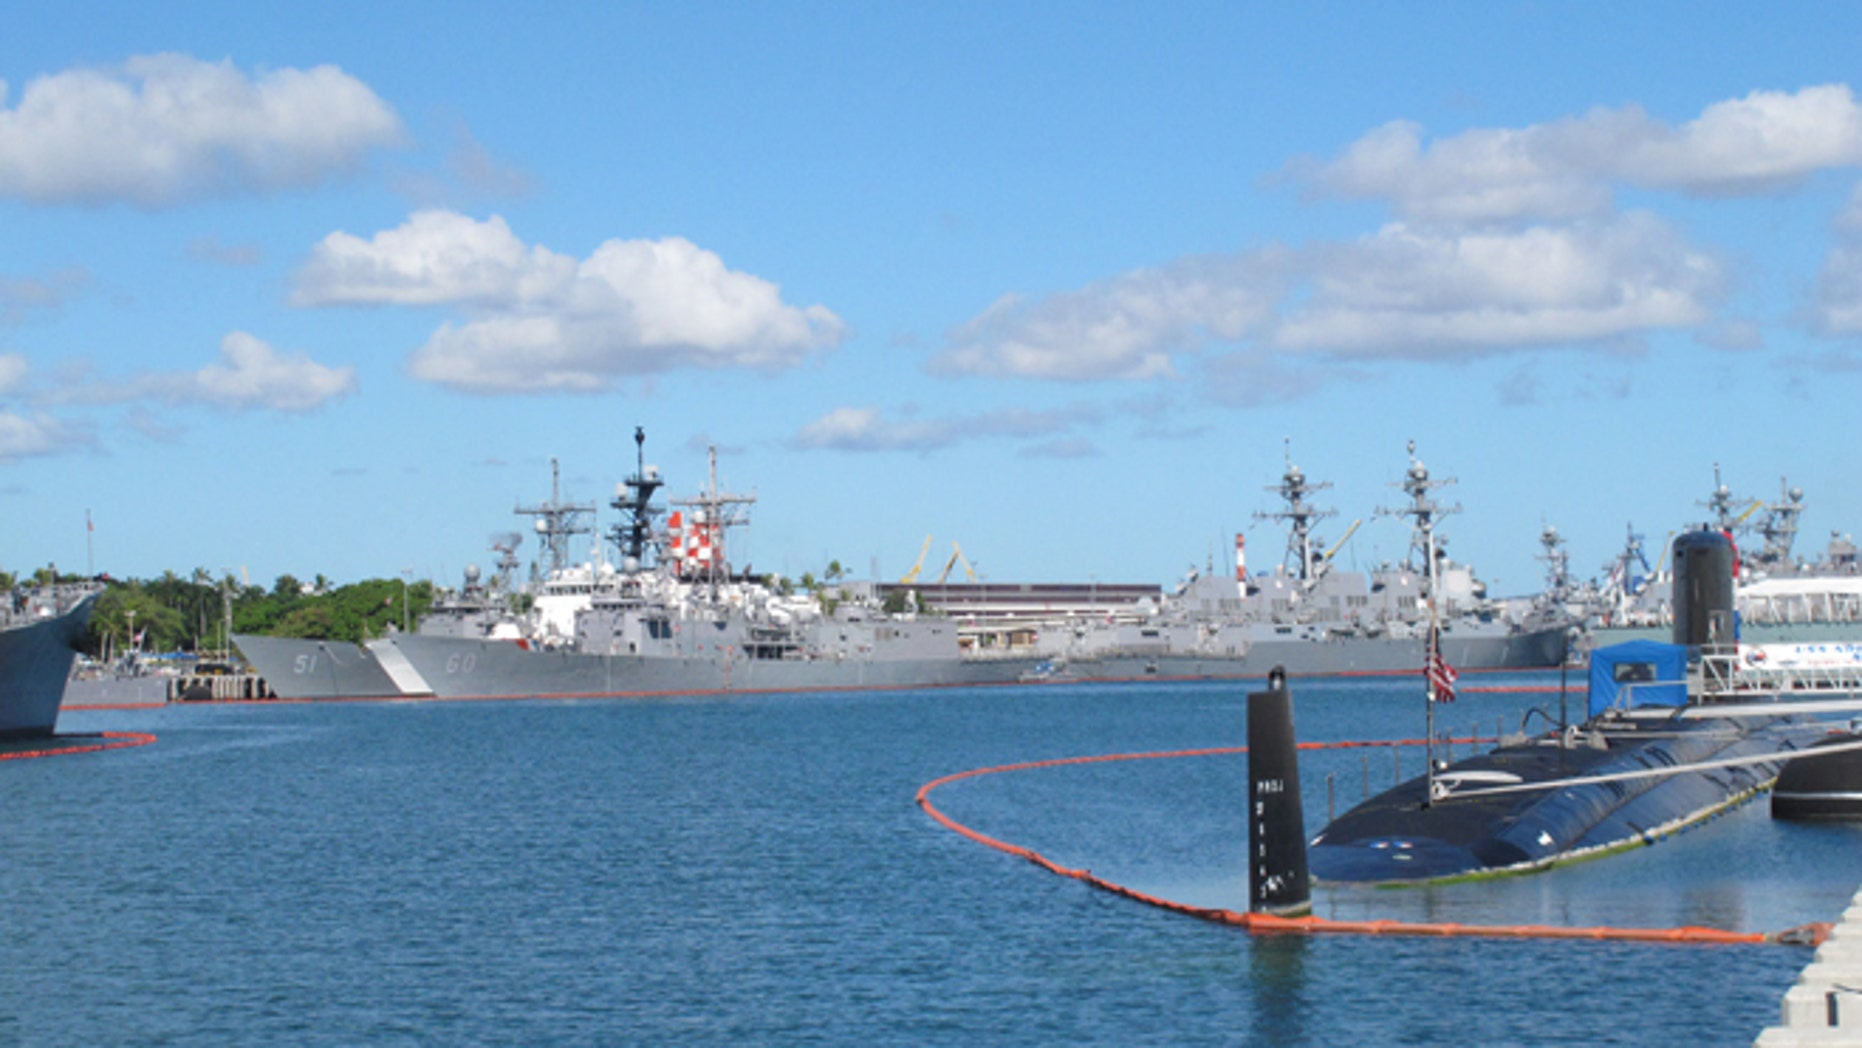 June 30, 2014: Vessels sit docked at Pearl Harbor, Hawaii, during the the Rim of the Pacific naval exercises.